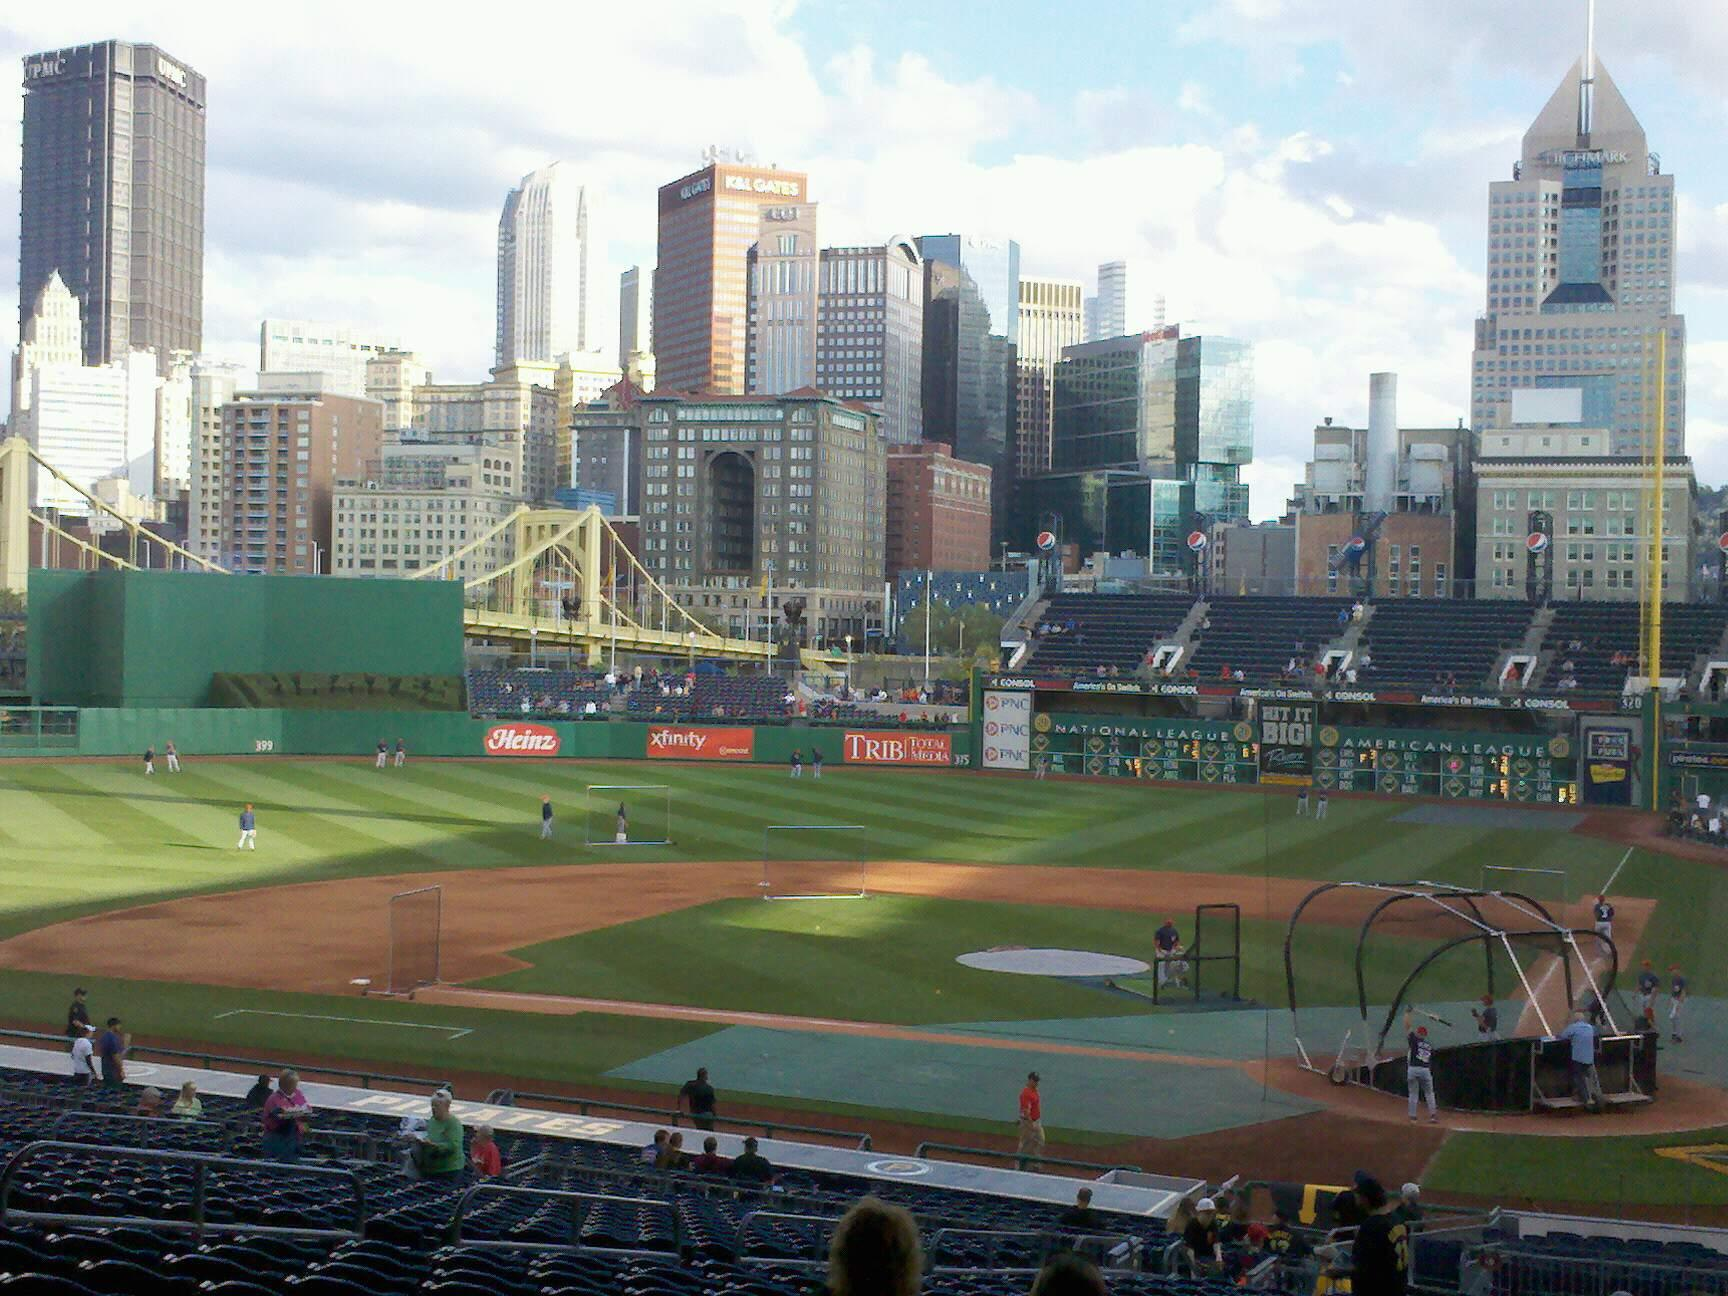 PNC Park Section 119 Row GG Seat 24